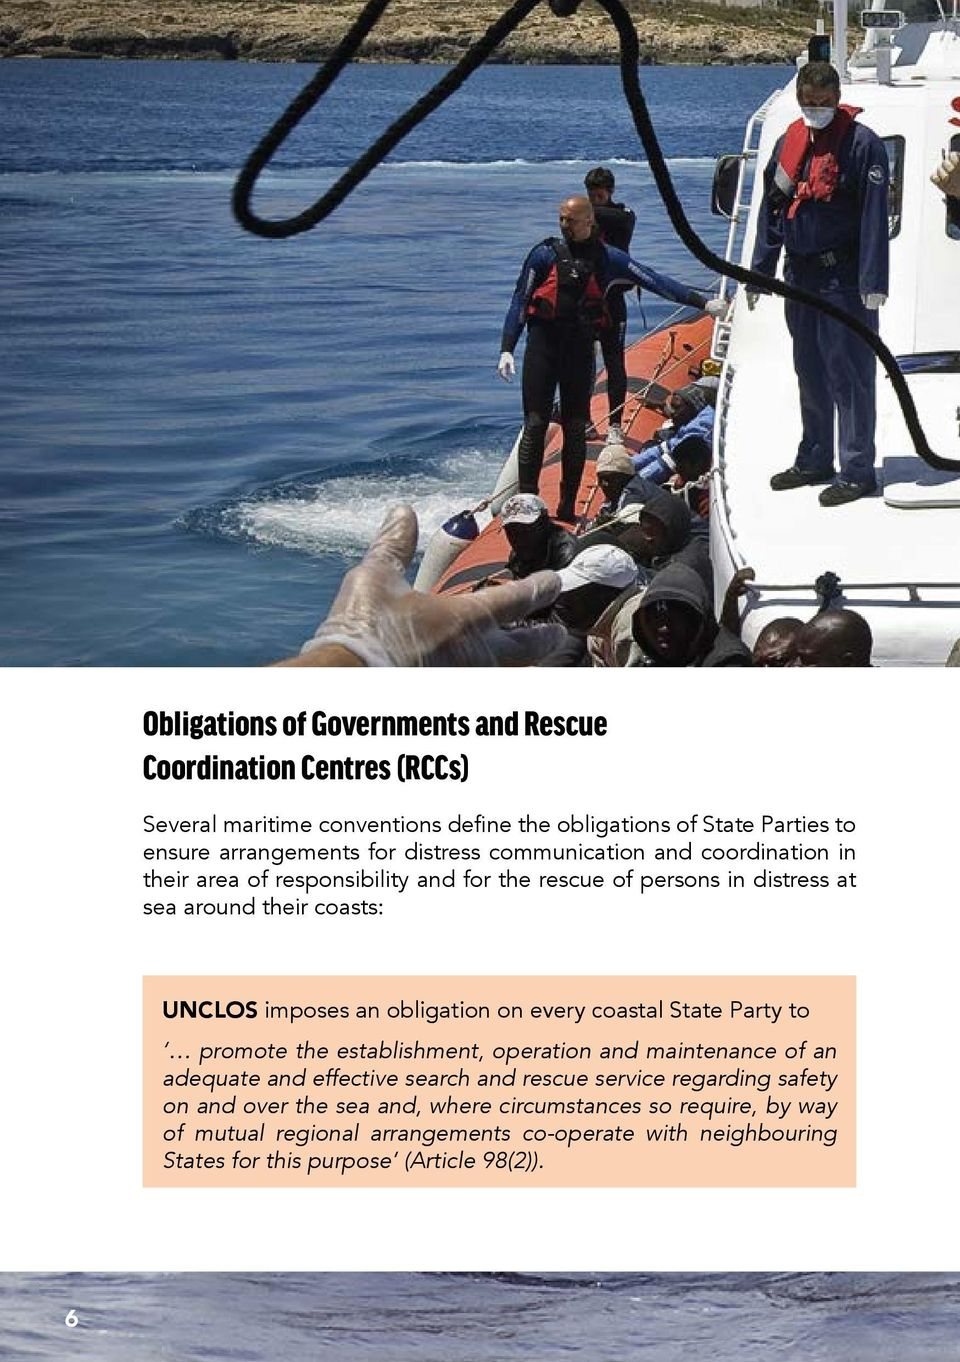 obligation on every coastal State Party to promote the establishment, operation and maintenance of an adequate and effective search and rescue service regarding